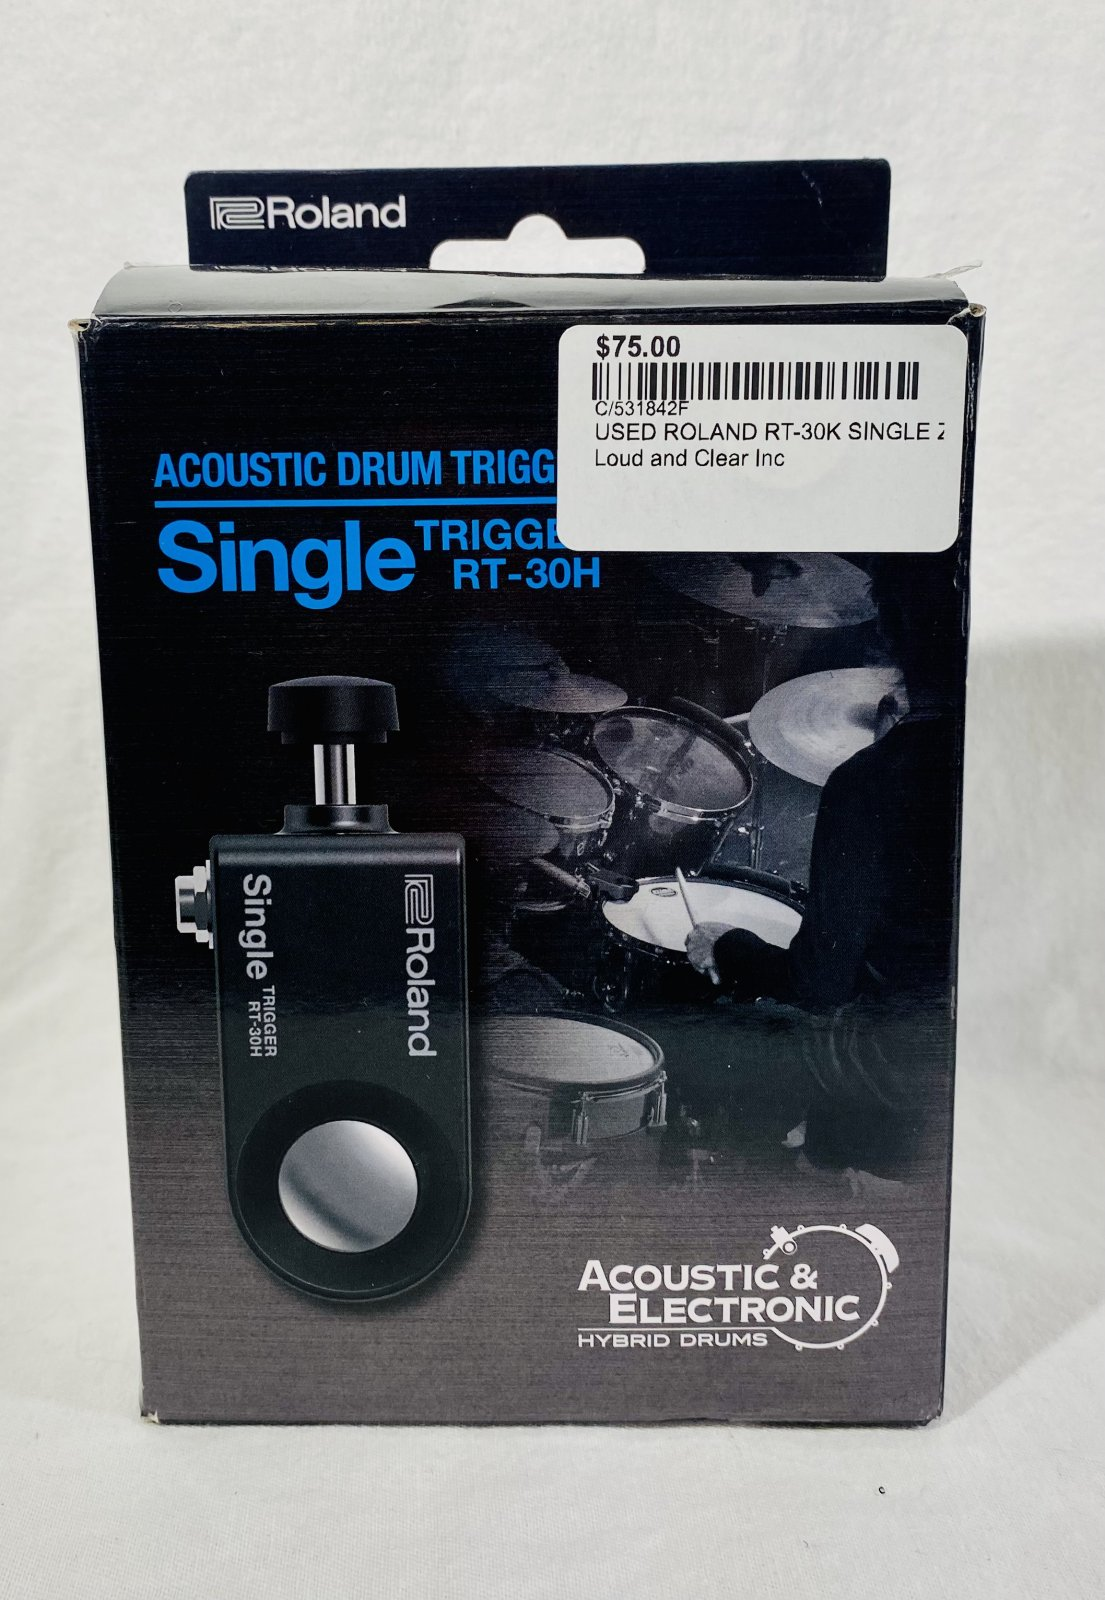 USED ROLAND RT-30H SINGLE ZONE DRUM TRIGGER